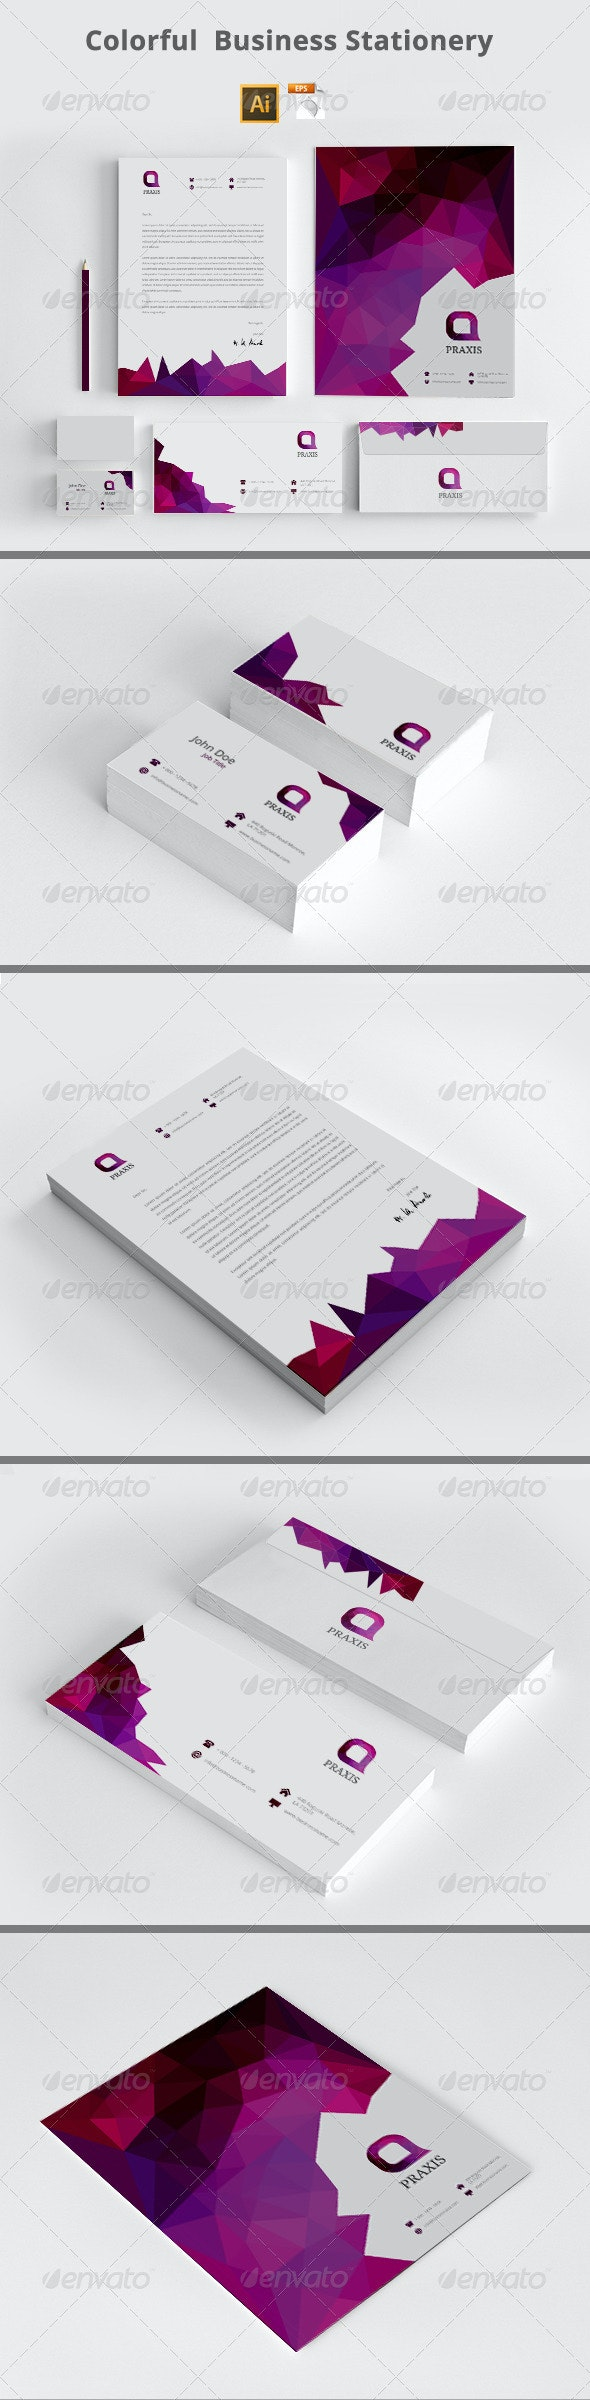 Colorful Business Stationery - Stationery Print Templates